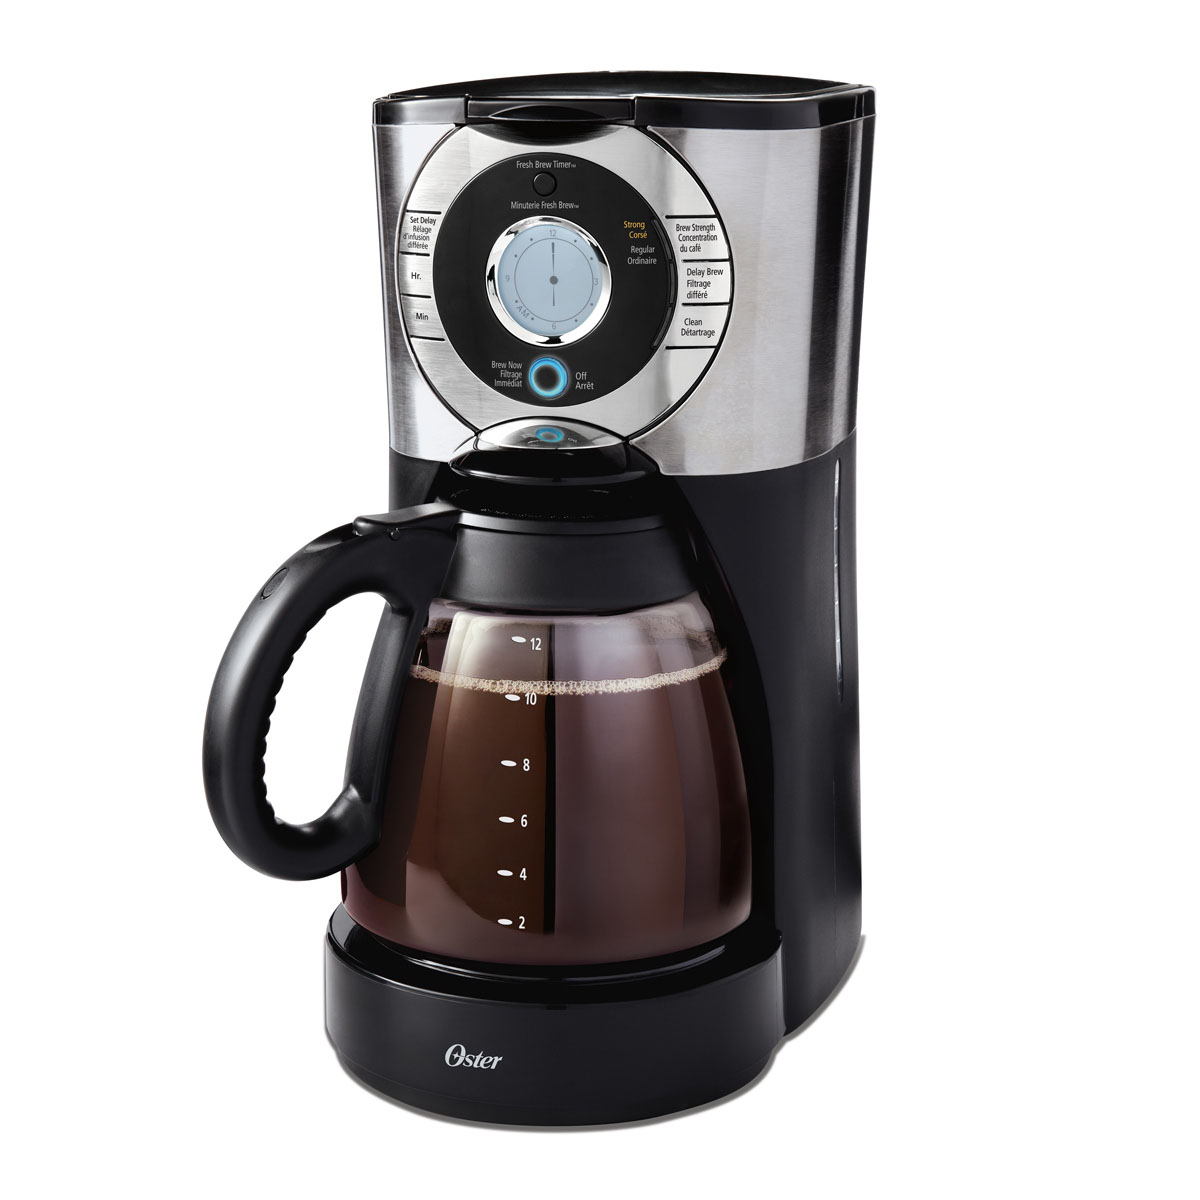 Fix Oster Coffee Maker : Oster 12-Cup Programmable Coffee Maker, Stainless Steel BVSTEJX33-033 Oster Canada